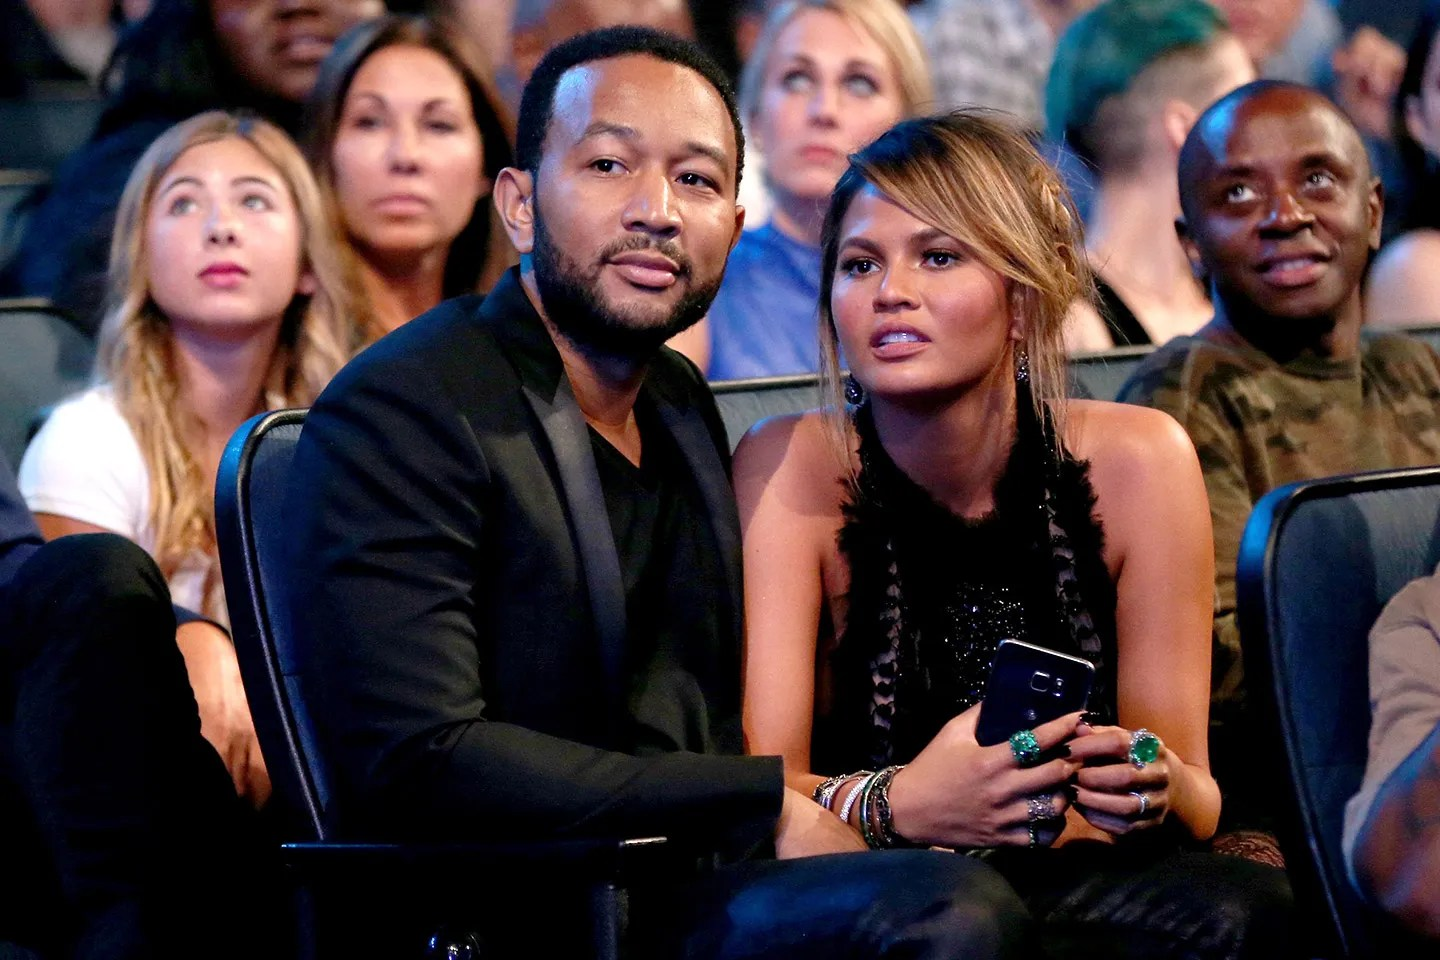 chrissy teigen thought illuminati